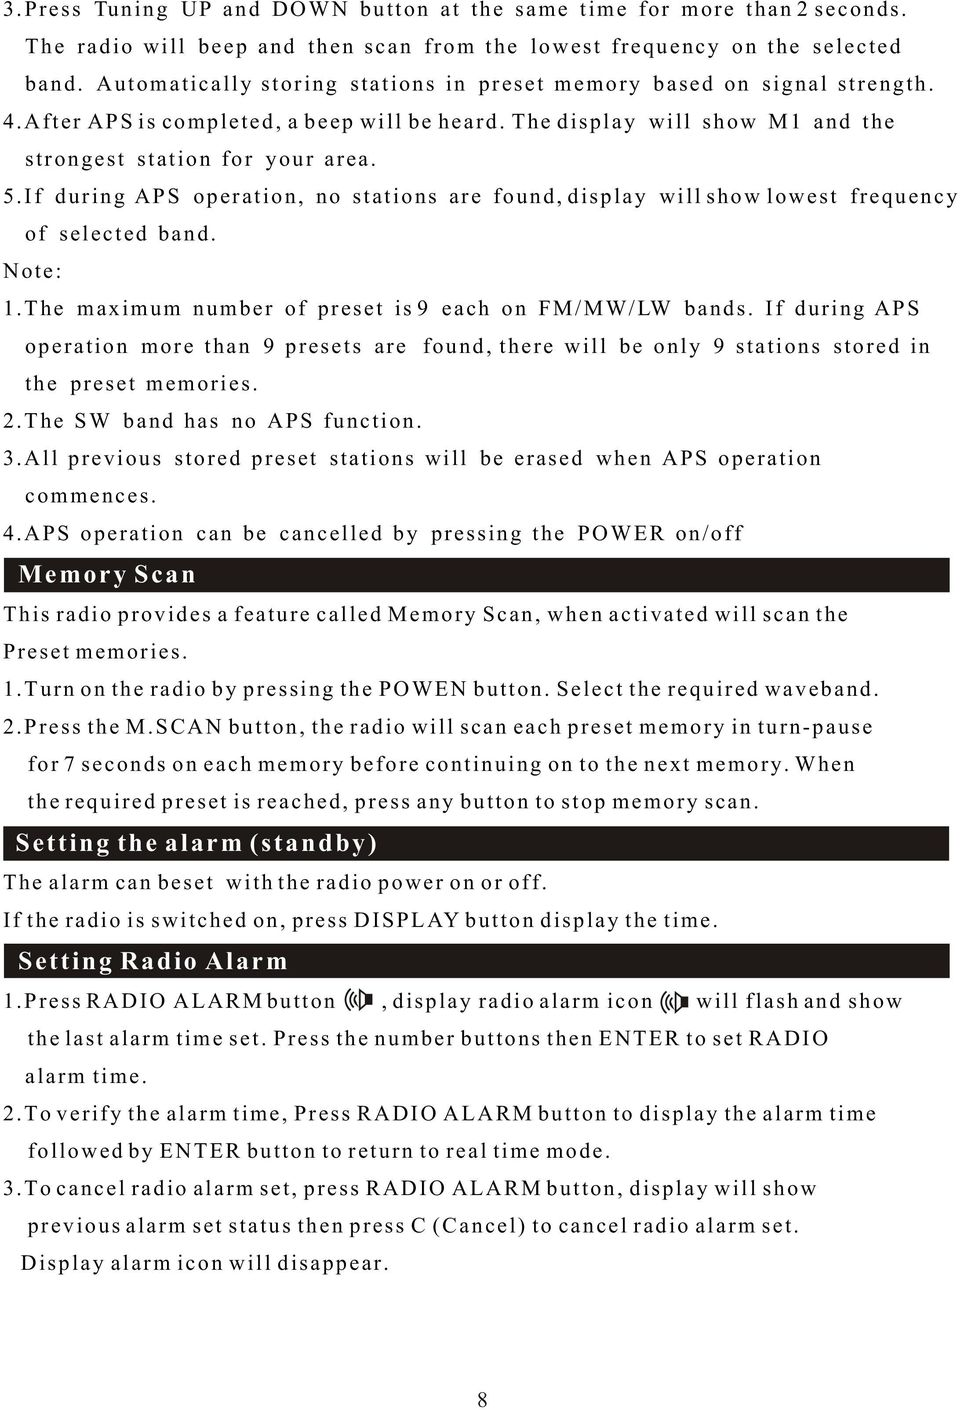 If during APS operation, no stations are found, display will show lowest frequency of selected band. Note: 1.The maximum number of preset is 9 each on FM/MW/LW bands.